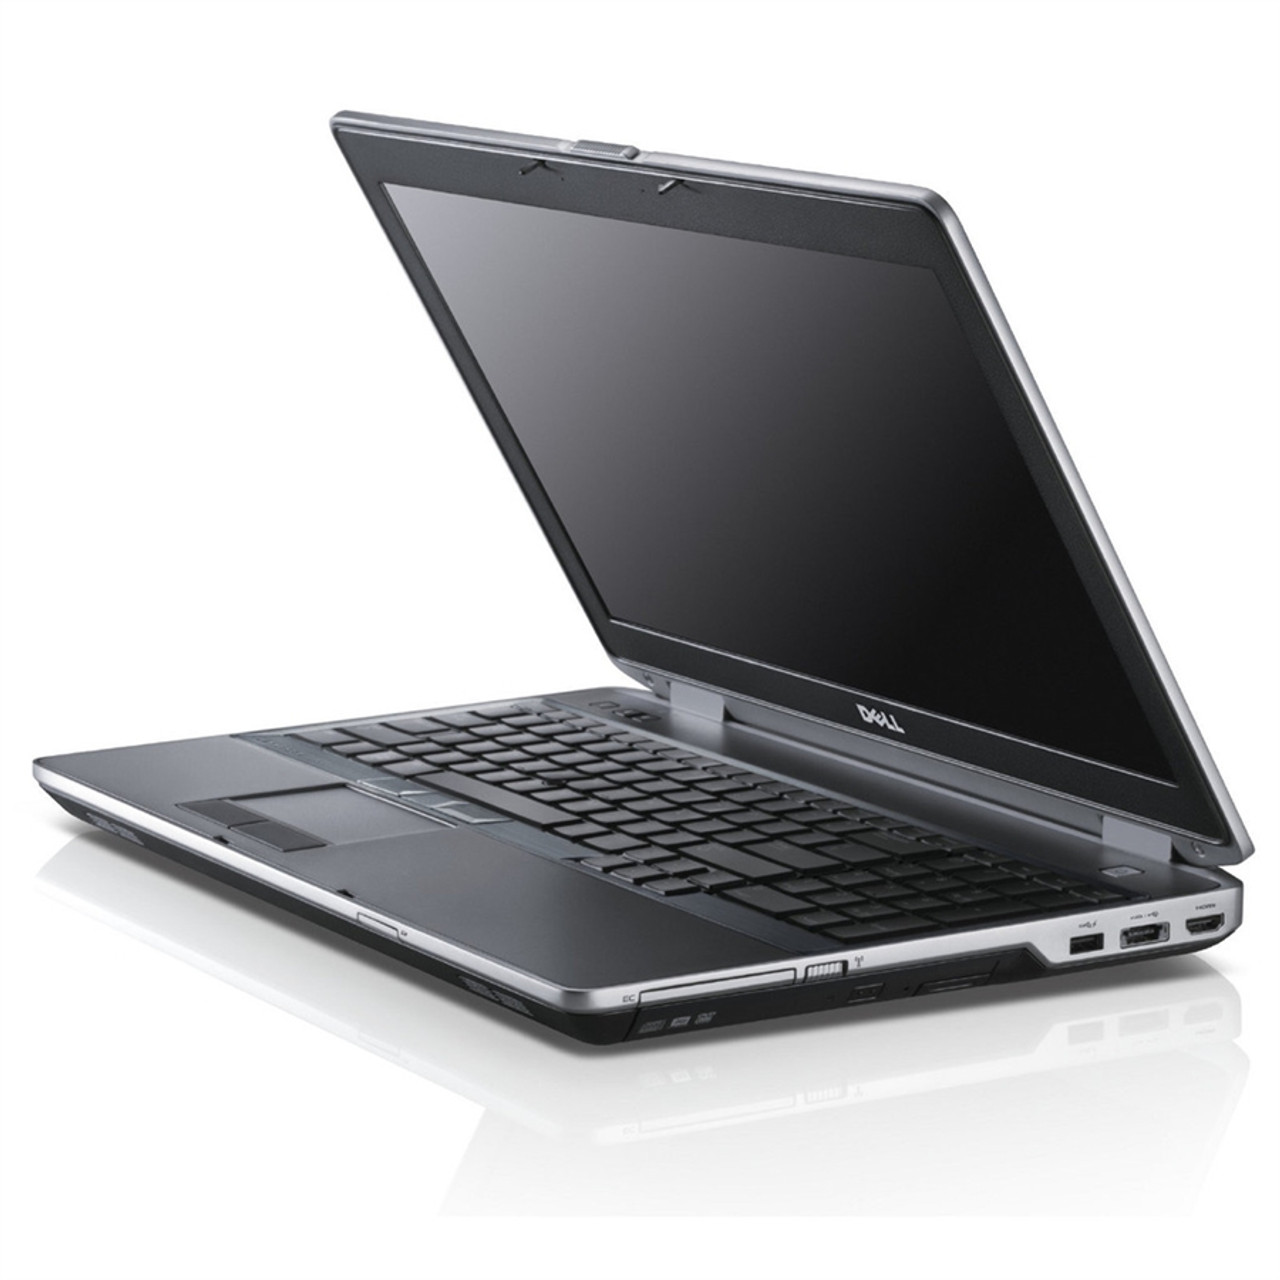 Dell Latitude E6320 Laptop Core i5 2.5GHz, 4GB Ram, 250GB HDD, DVD-RW, Windows 10 Pro 64 Notebook